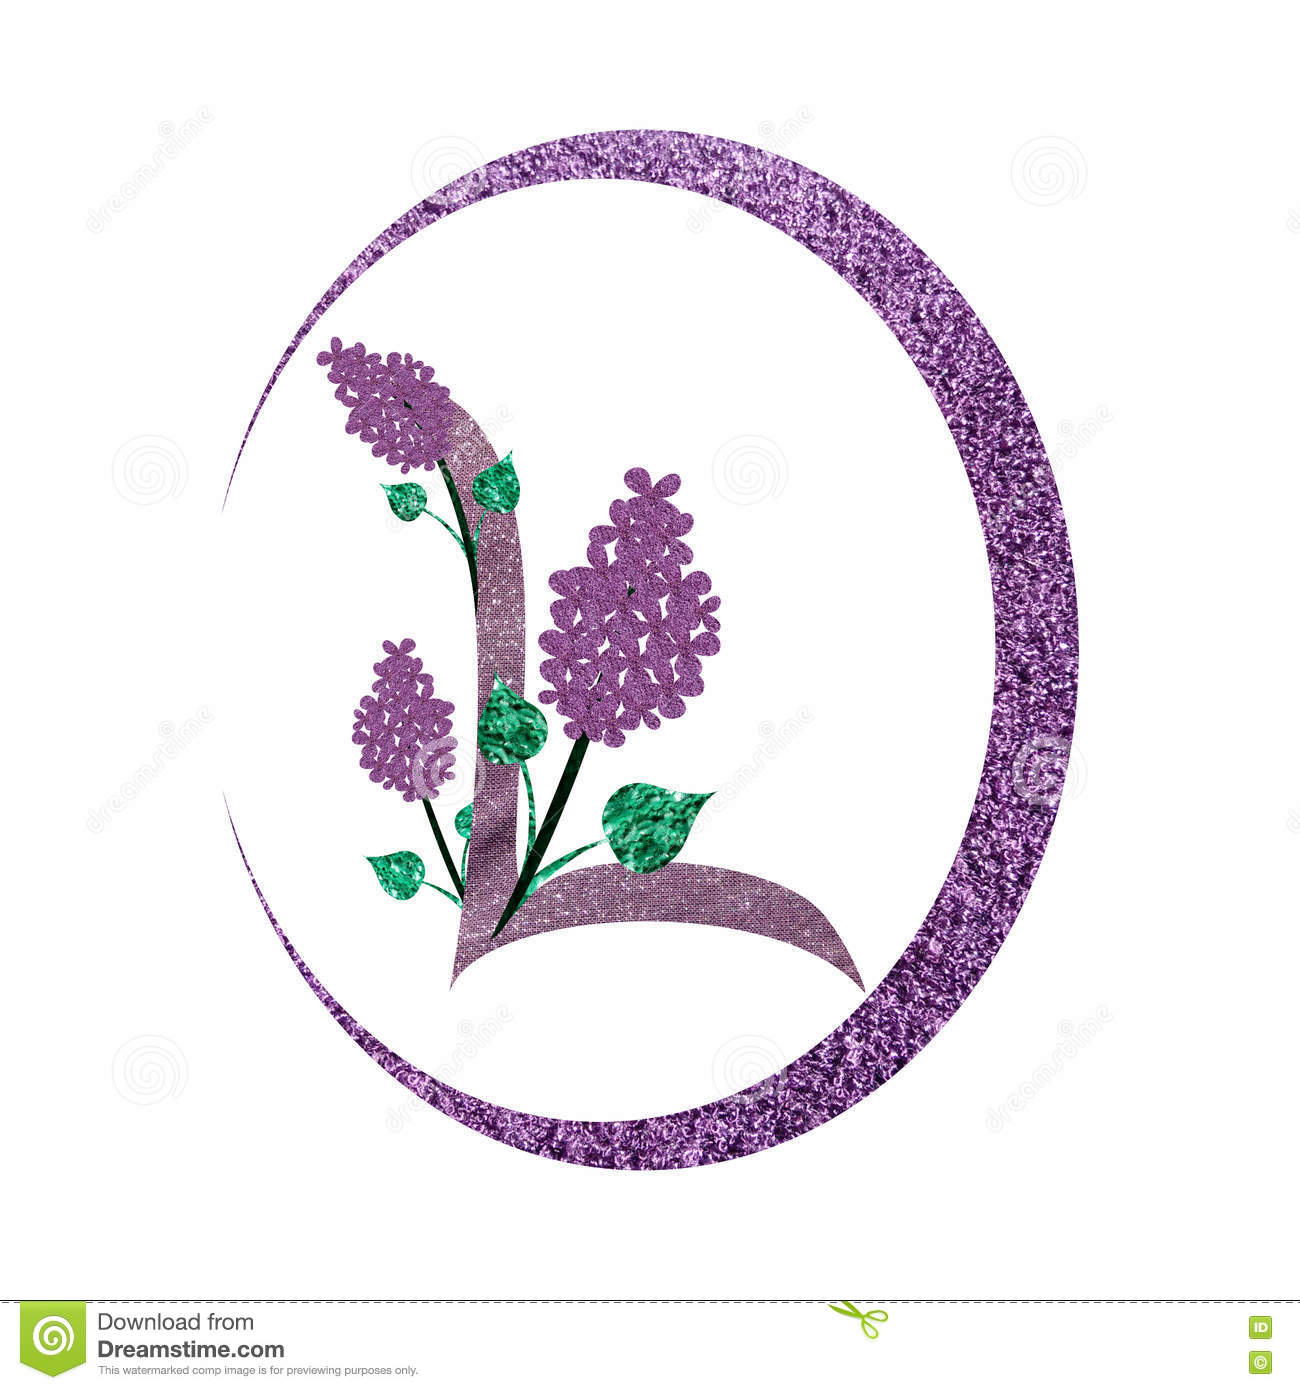 l letter logo with lilac flowers stock illustration illustration of letter decoration 72685105. Black Bedroom Furniture Sets. Home Design Ideas